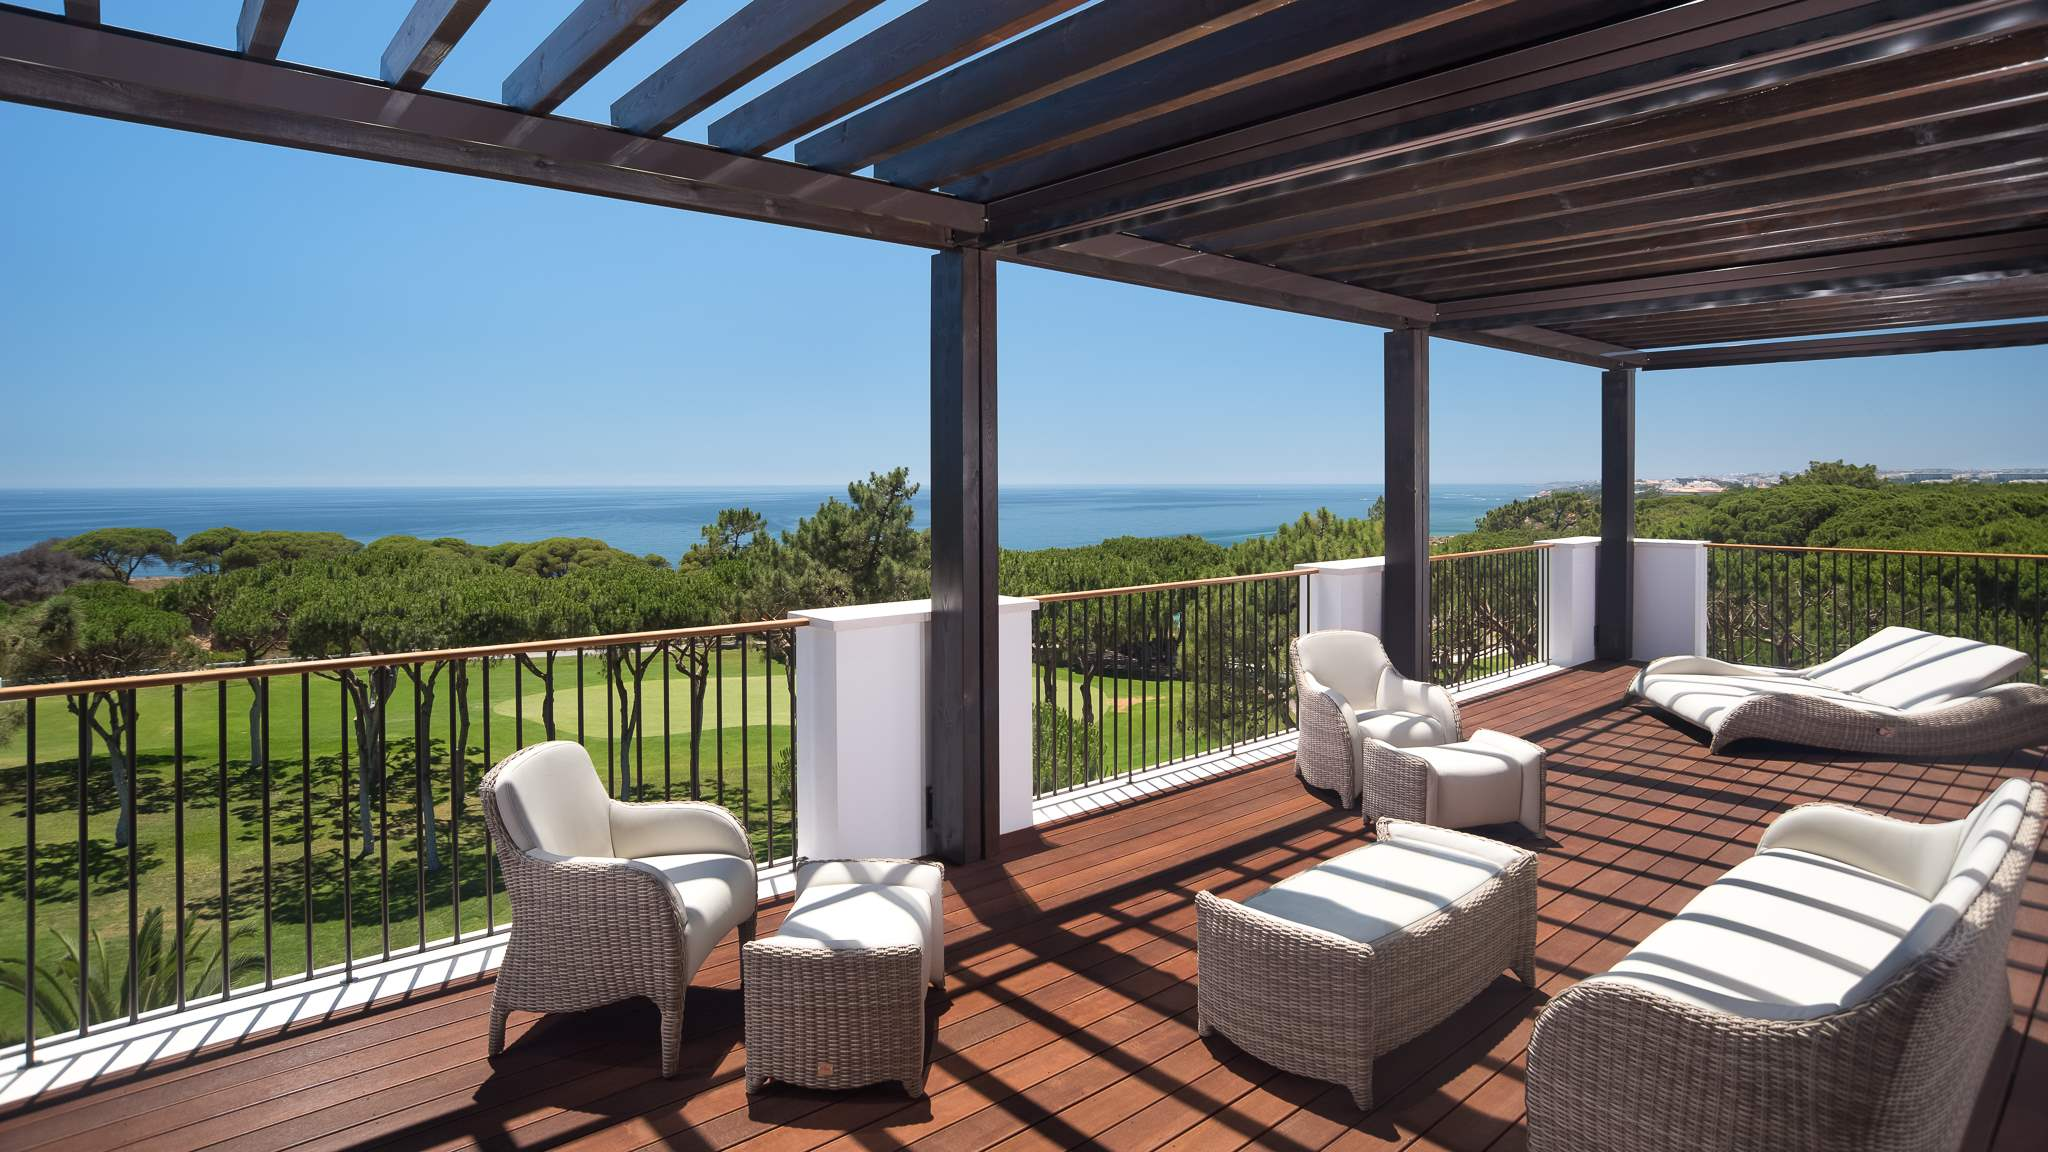 Pine Cliffs Ocean Suites, One Bedroom Apt, Penthouse Apt, 1 bedroom apartment in Pine Cliffs Resort, Algarve Photo #10